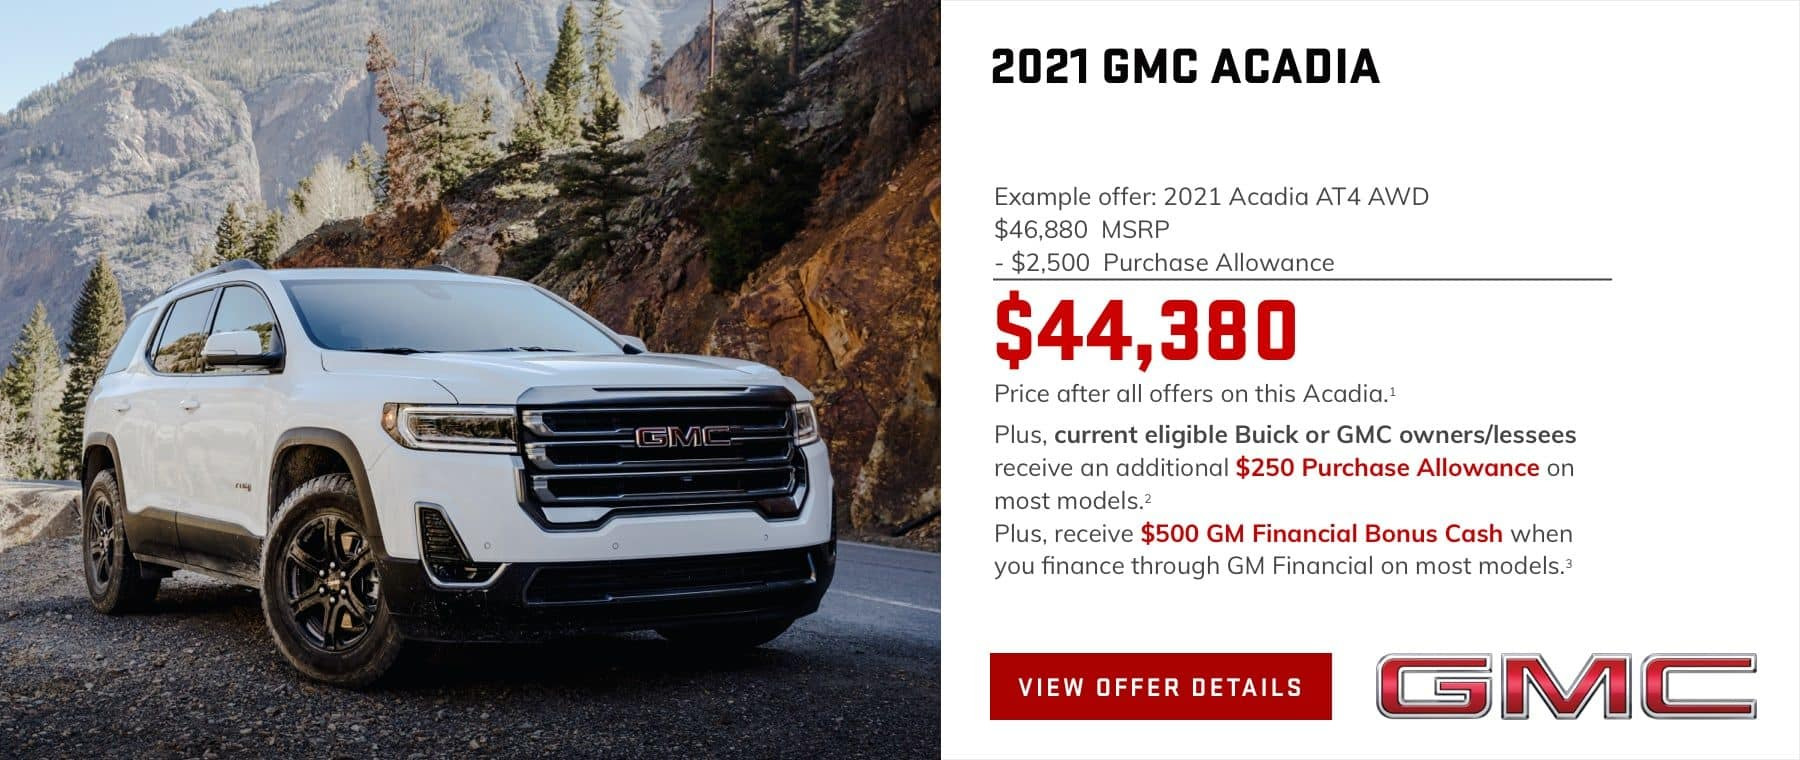 Example offer: 2021 Acadia AT4 AWD $46,880 MSRP $2,500 Purchase Allowance $44,380 Price after all offers on this Acadia.1 Plus, current eligible Buick or GMC owners/lessees receive an additional $250 Purchase Allowance on most models.2 Plus, receive $500 GM Financial Bonus Cash when you finance through GM Financial on most models.3